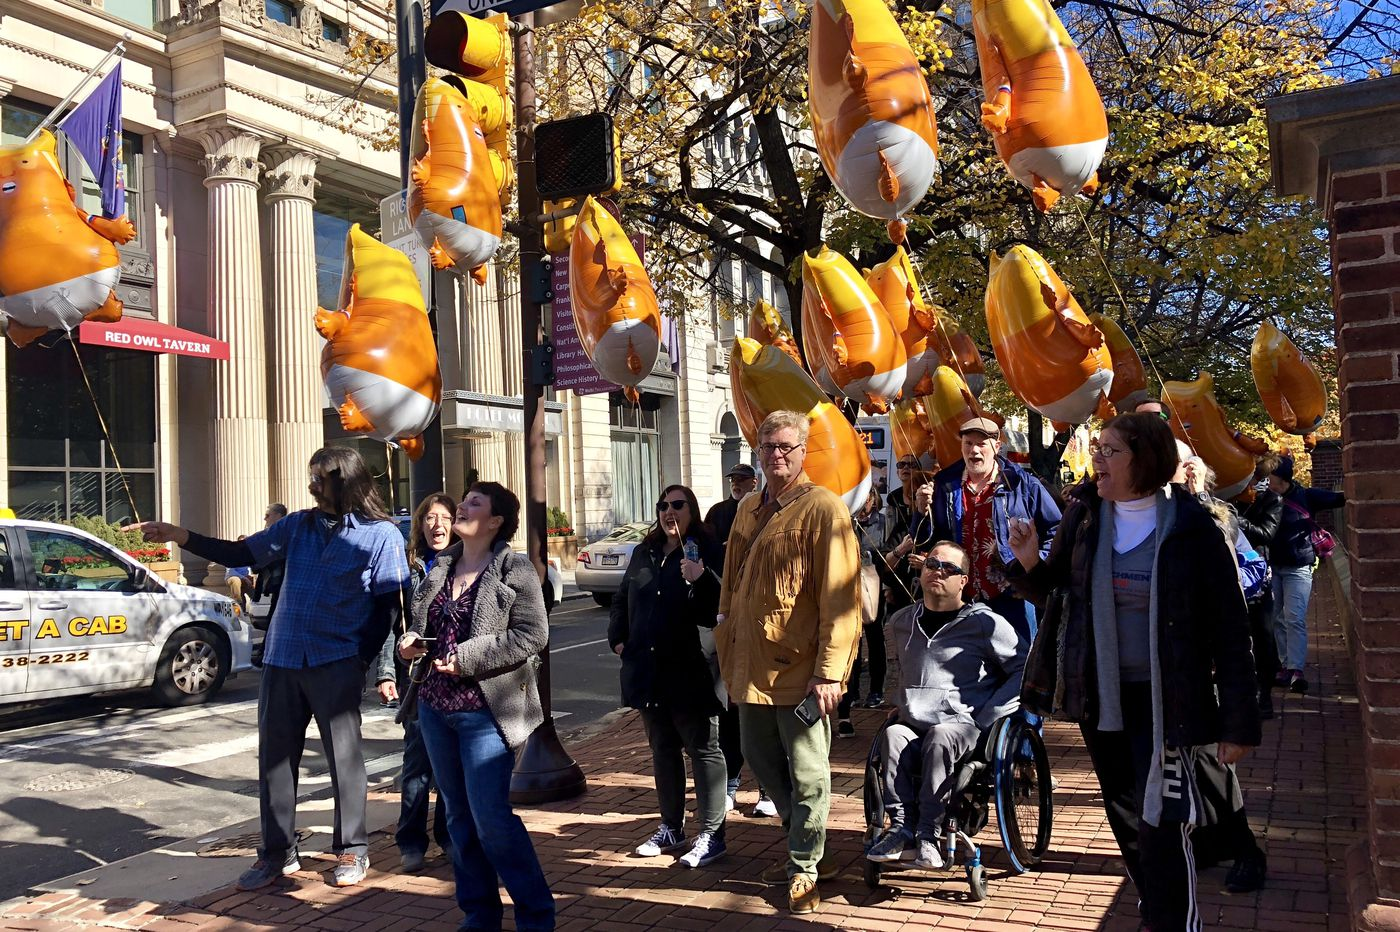 Noted anti-Trump rabble-rouser leads balloon-wielding protesters around Independence Mall